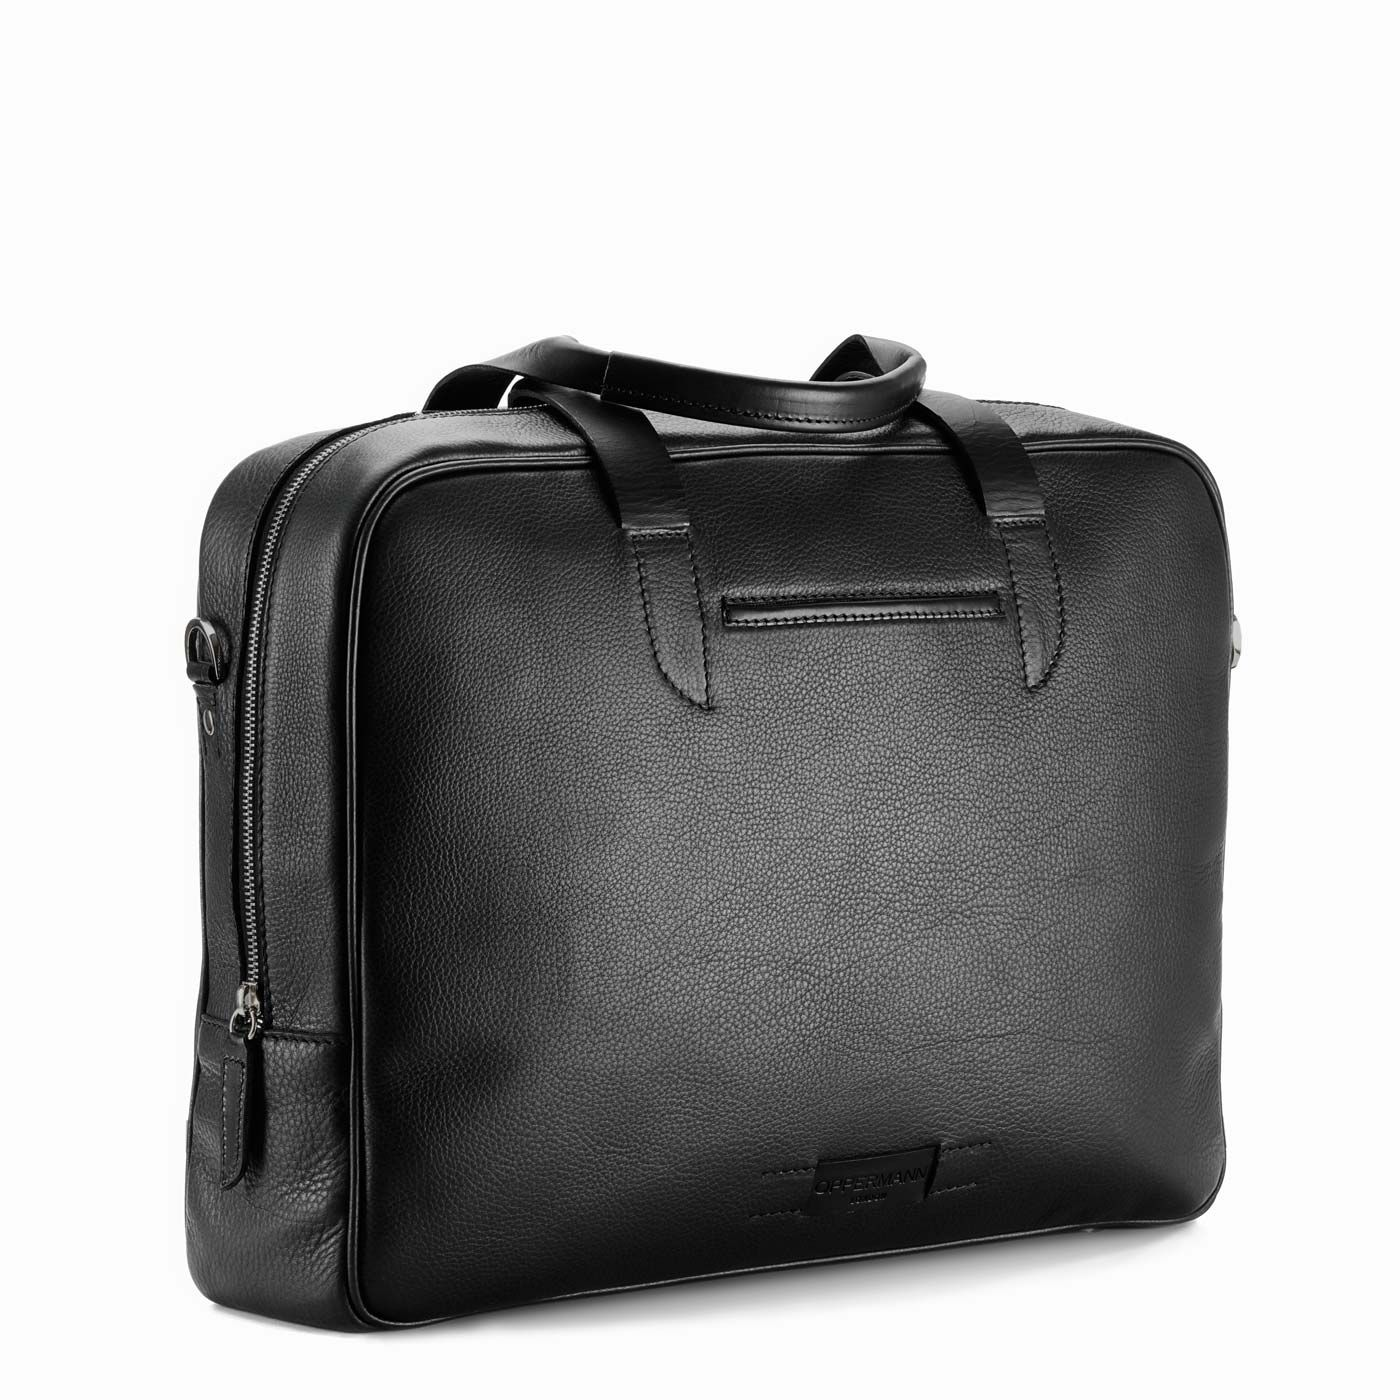 12358803e712 Bolton Briefcase Black. Leather briefcase made in Italy.